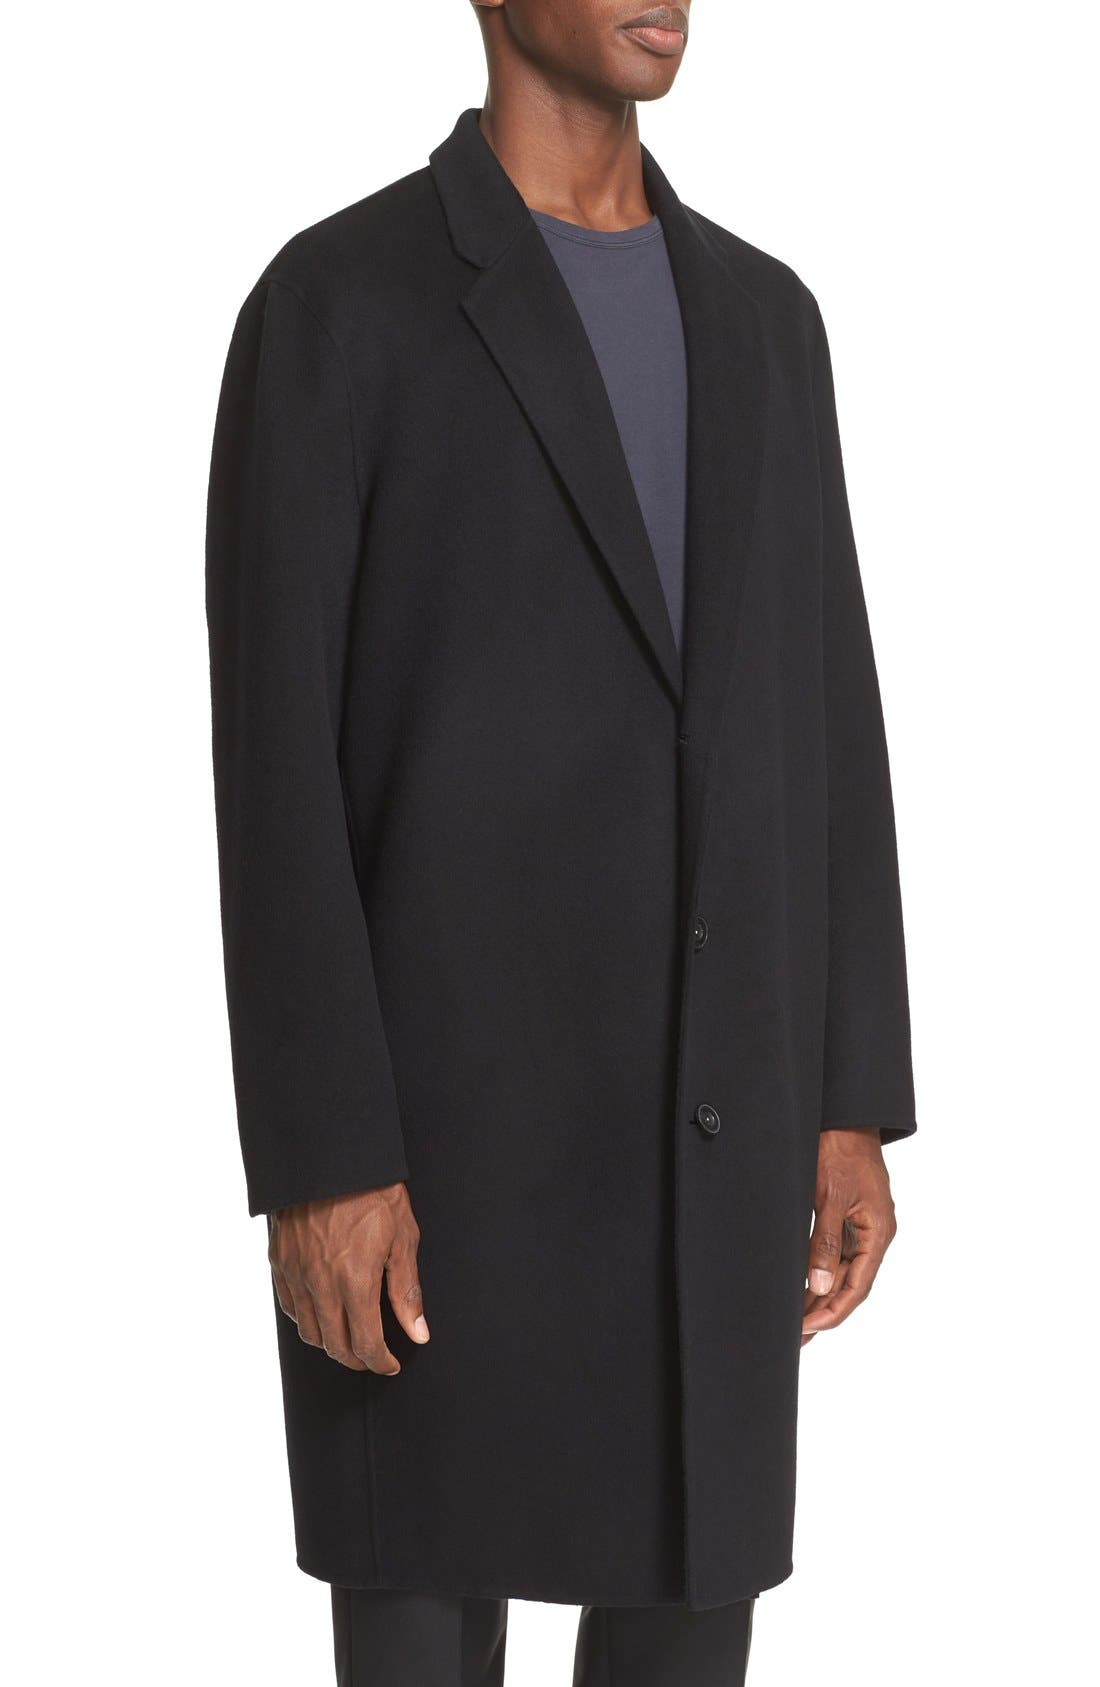 Charles Wool & Cashmere Coat,                             Alternate thumbnail 4, color,                             001